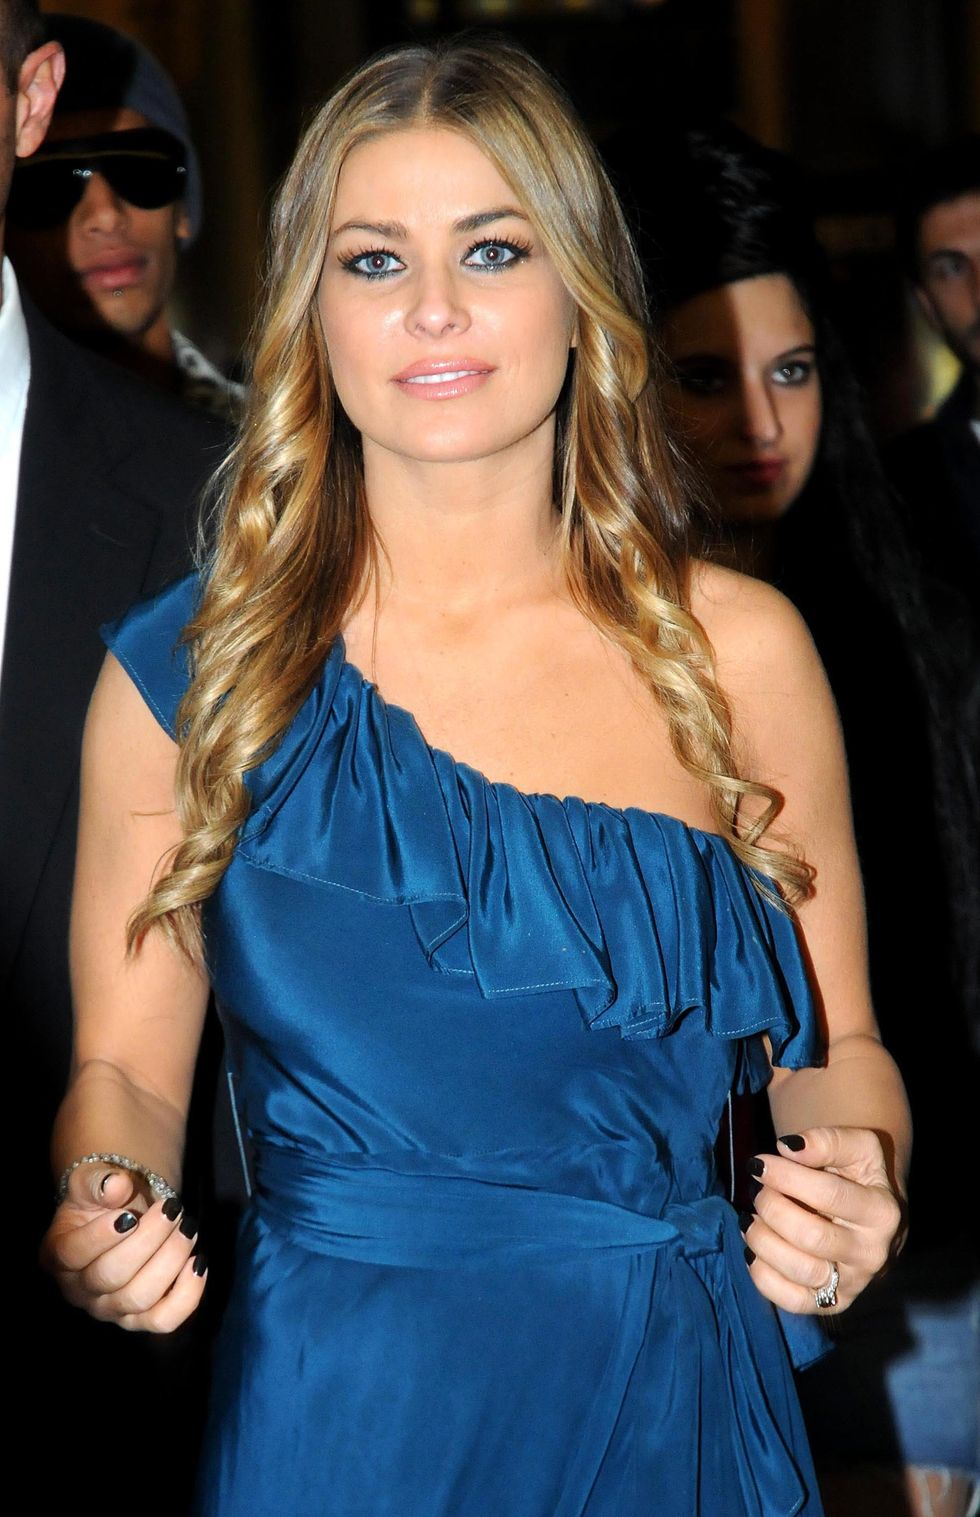 carmen-electra-disaster-movie-premiere-in-milan-01